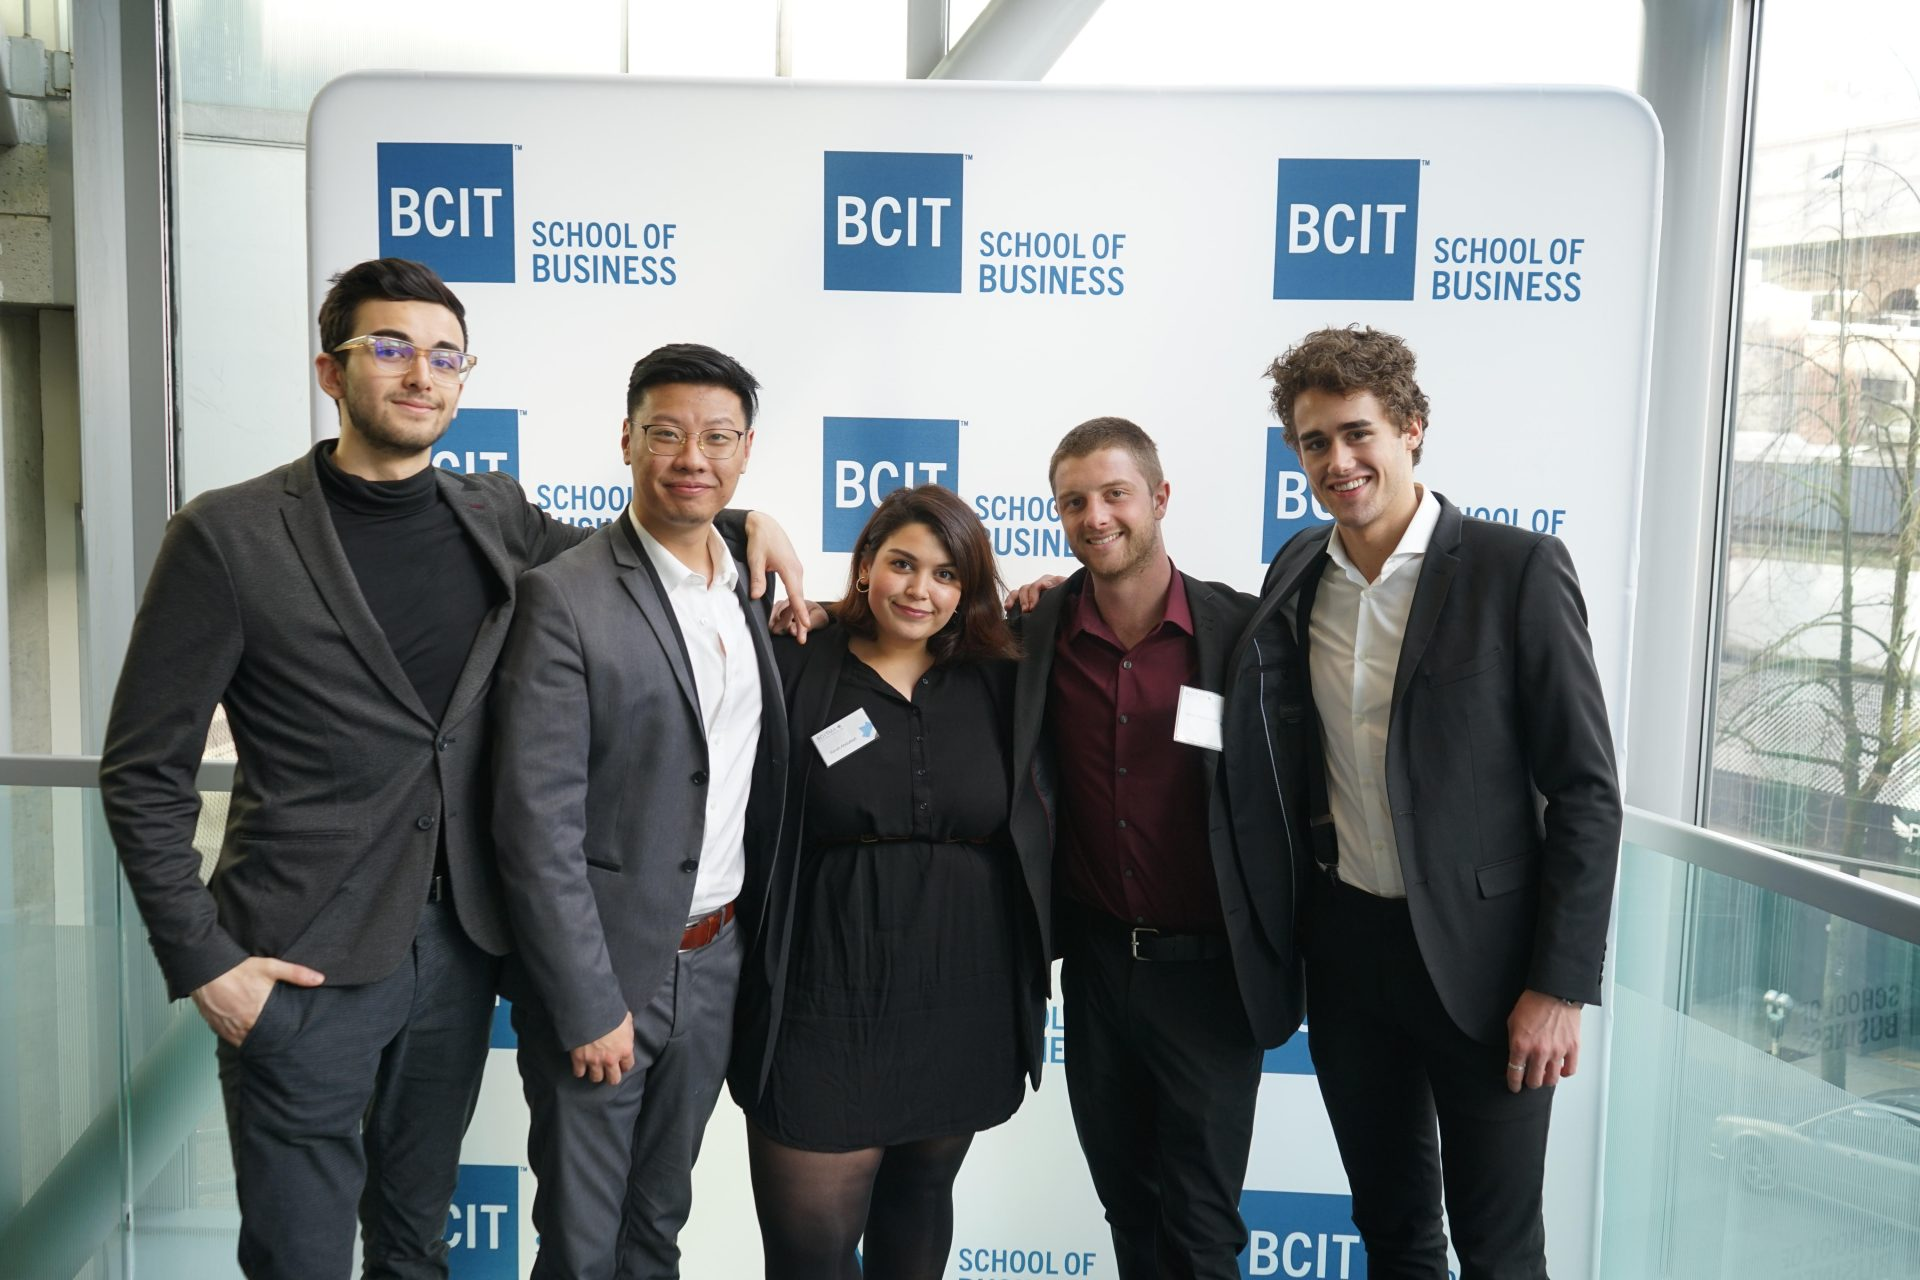 BCITMA's marketing conference for students is happening this month